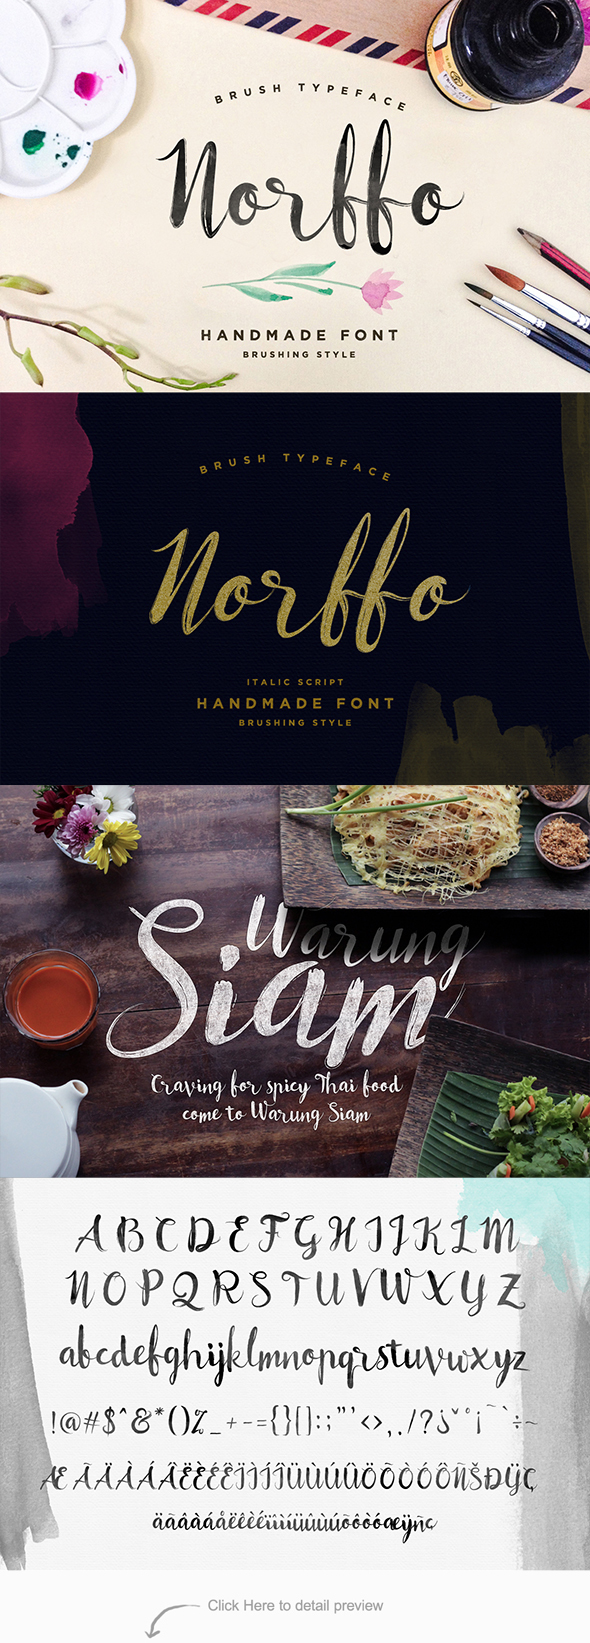 Norffo Font - Hand-writing Script